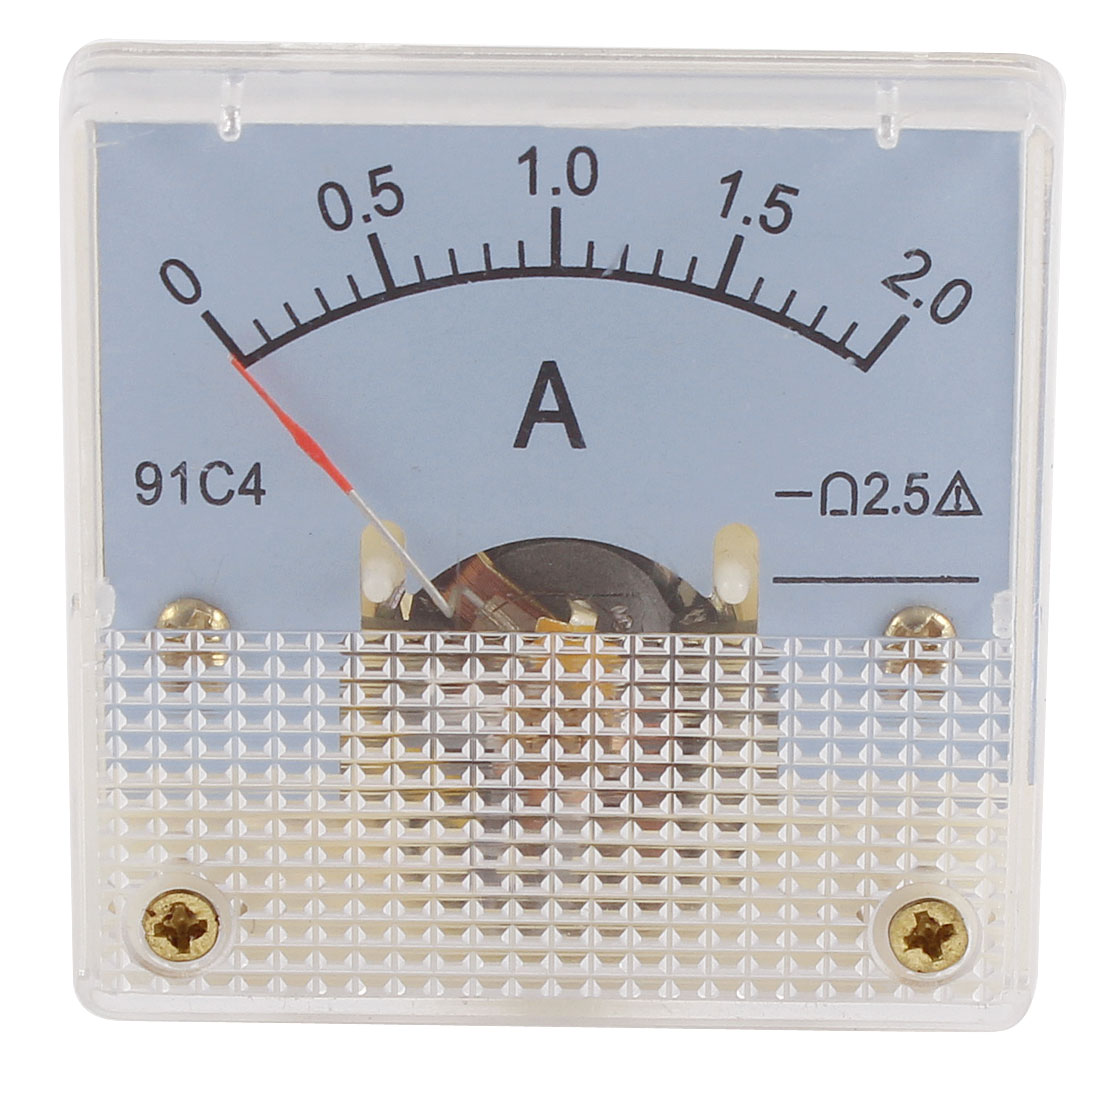 91C4 DC 0-2A Rectangle Mini Analog Panel Ammeter Gauge Amperemeter Class 2.5